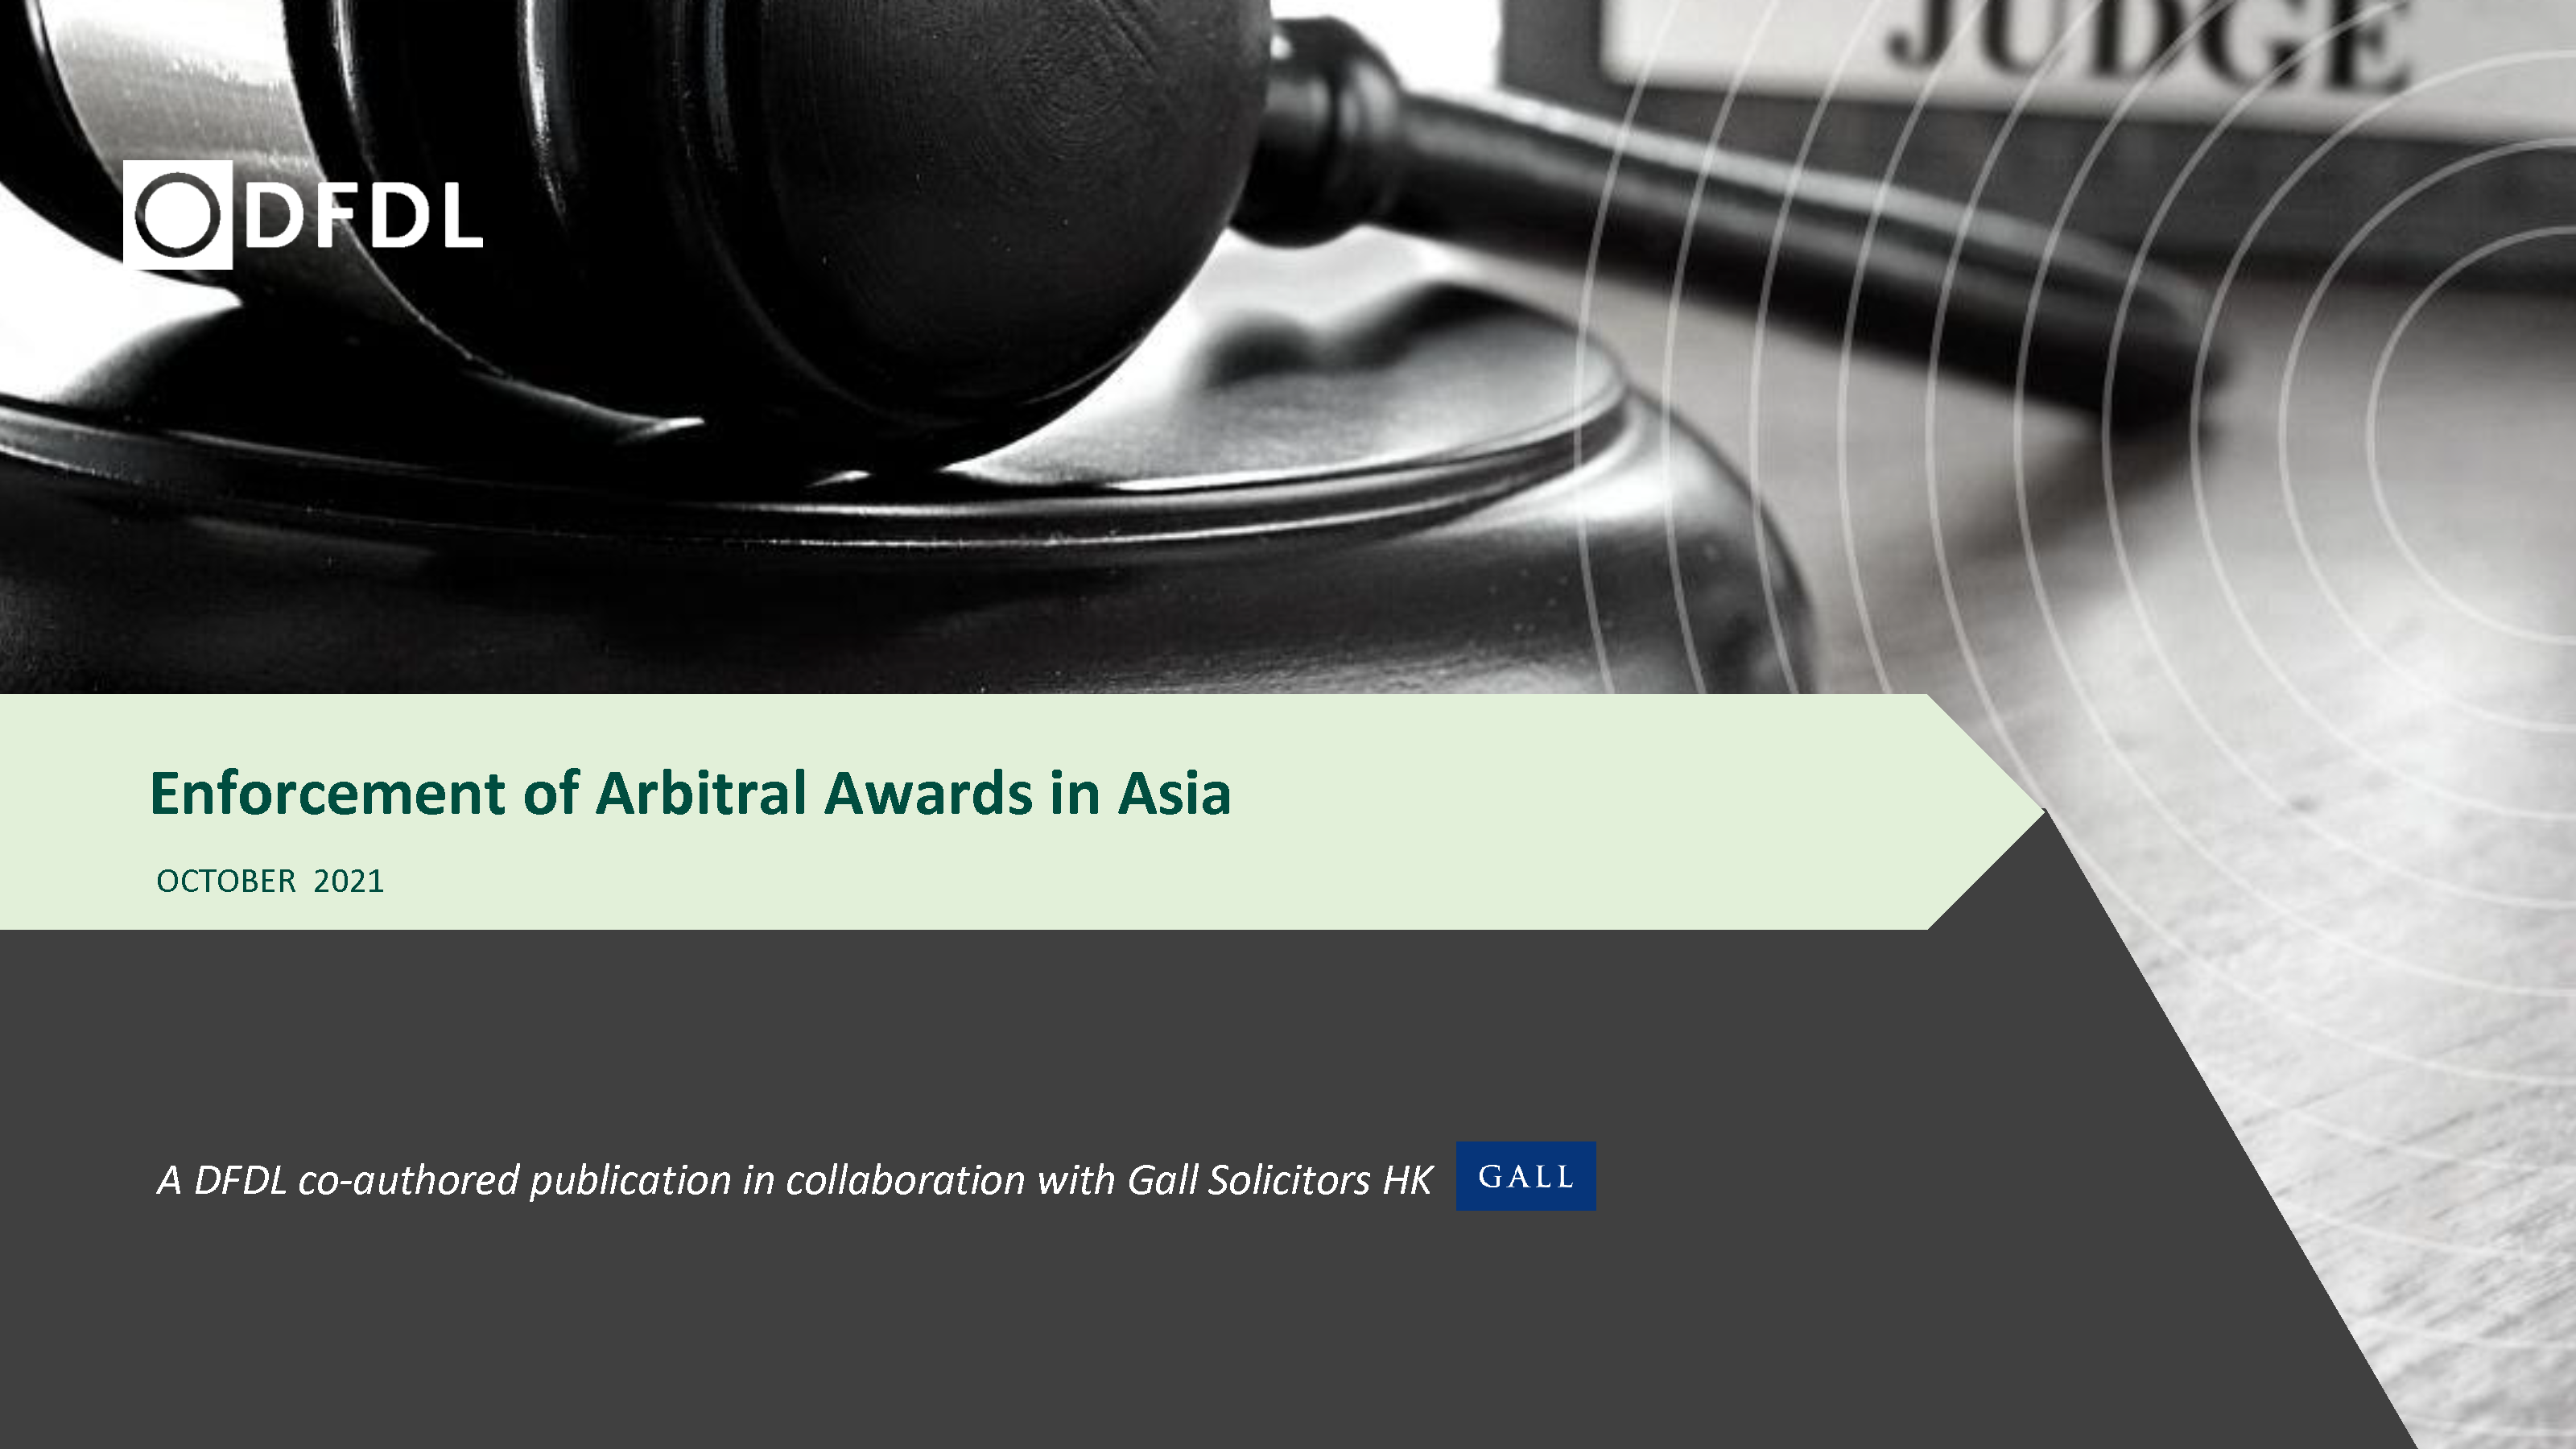 Enforcement of Arbitral Awards in Asia